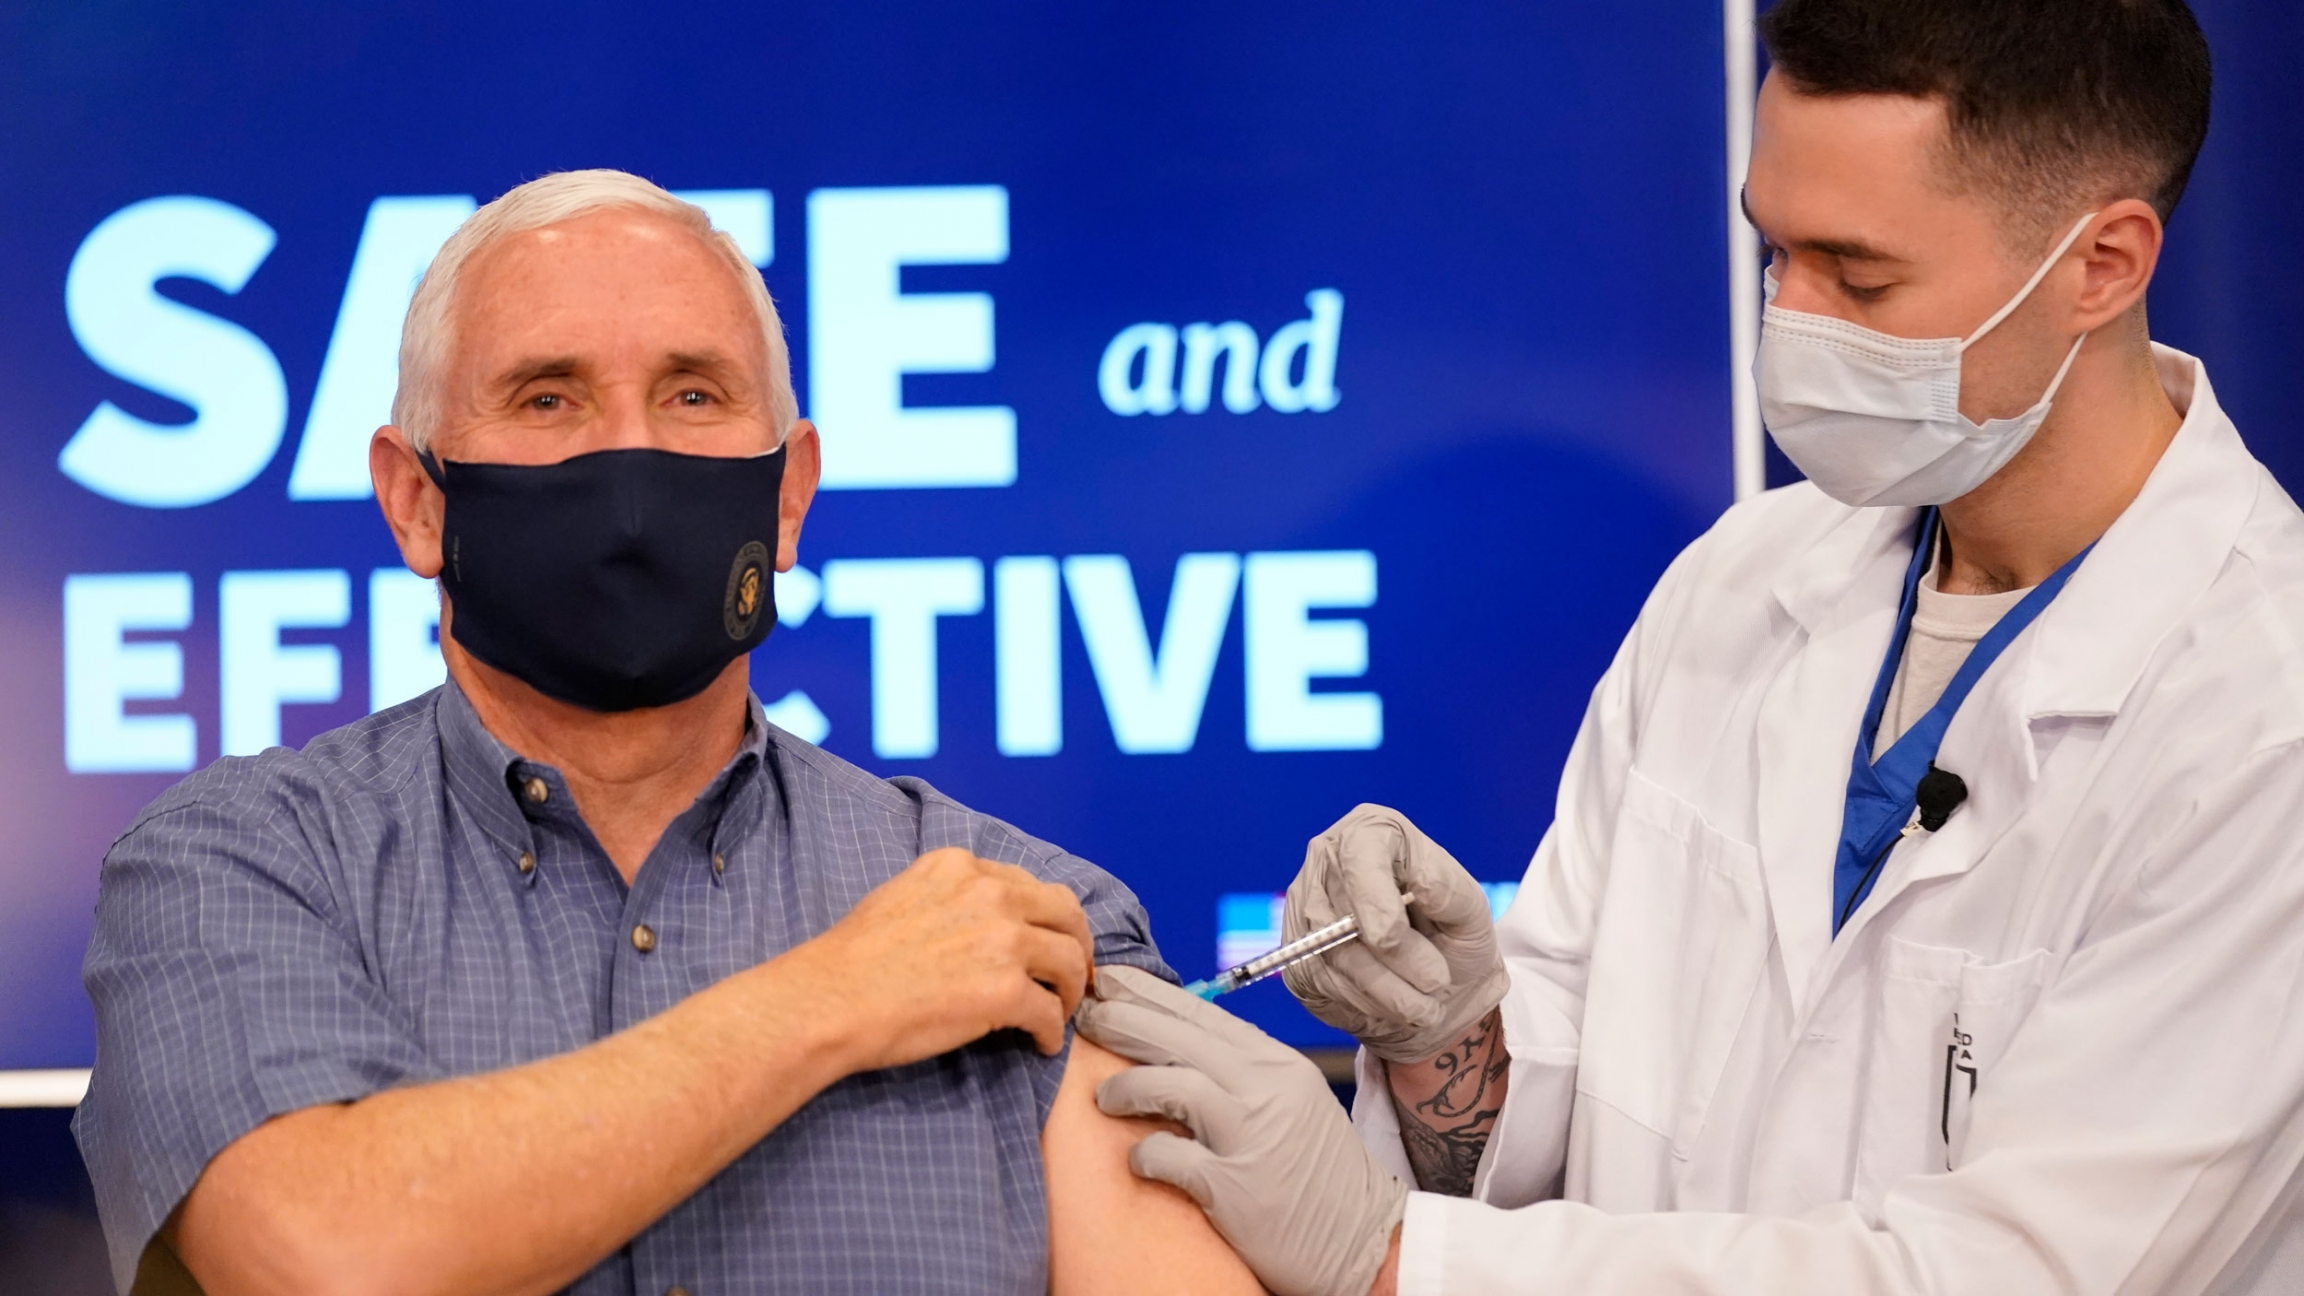 US Vice President Mike Pence is shown holding his sleeve up while a doctor injects the Pfizer-BioNTech COVID-19 vaccine shot in his shoulder.